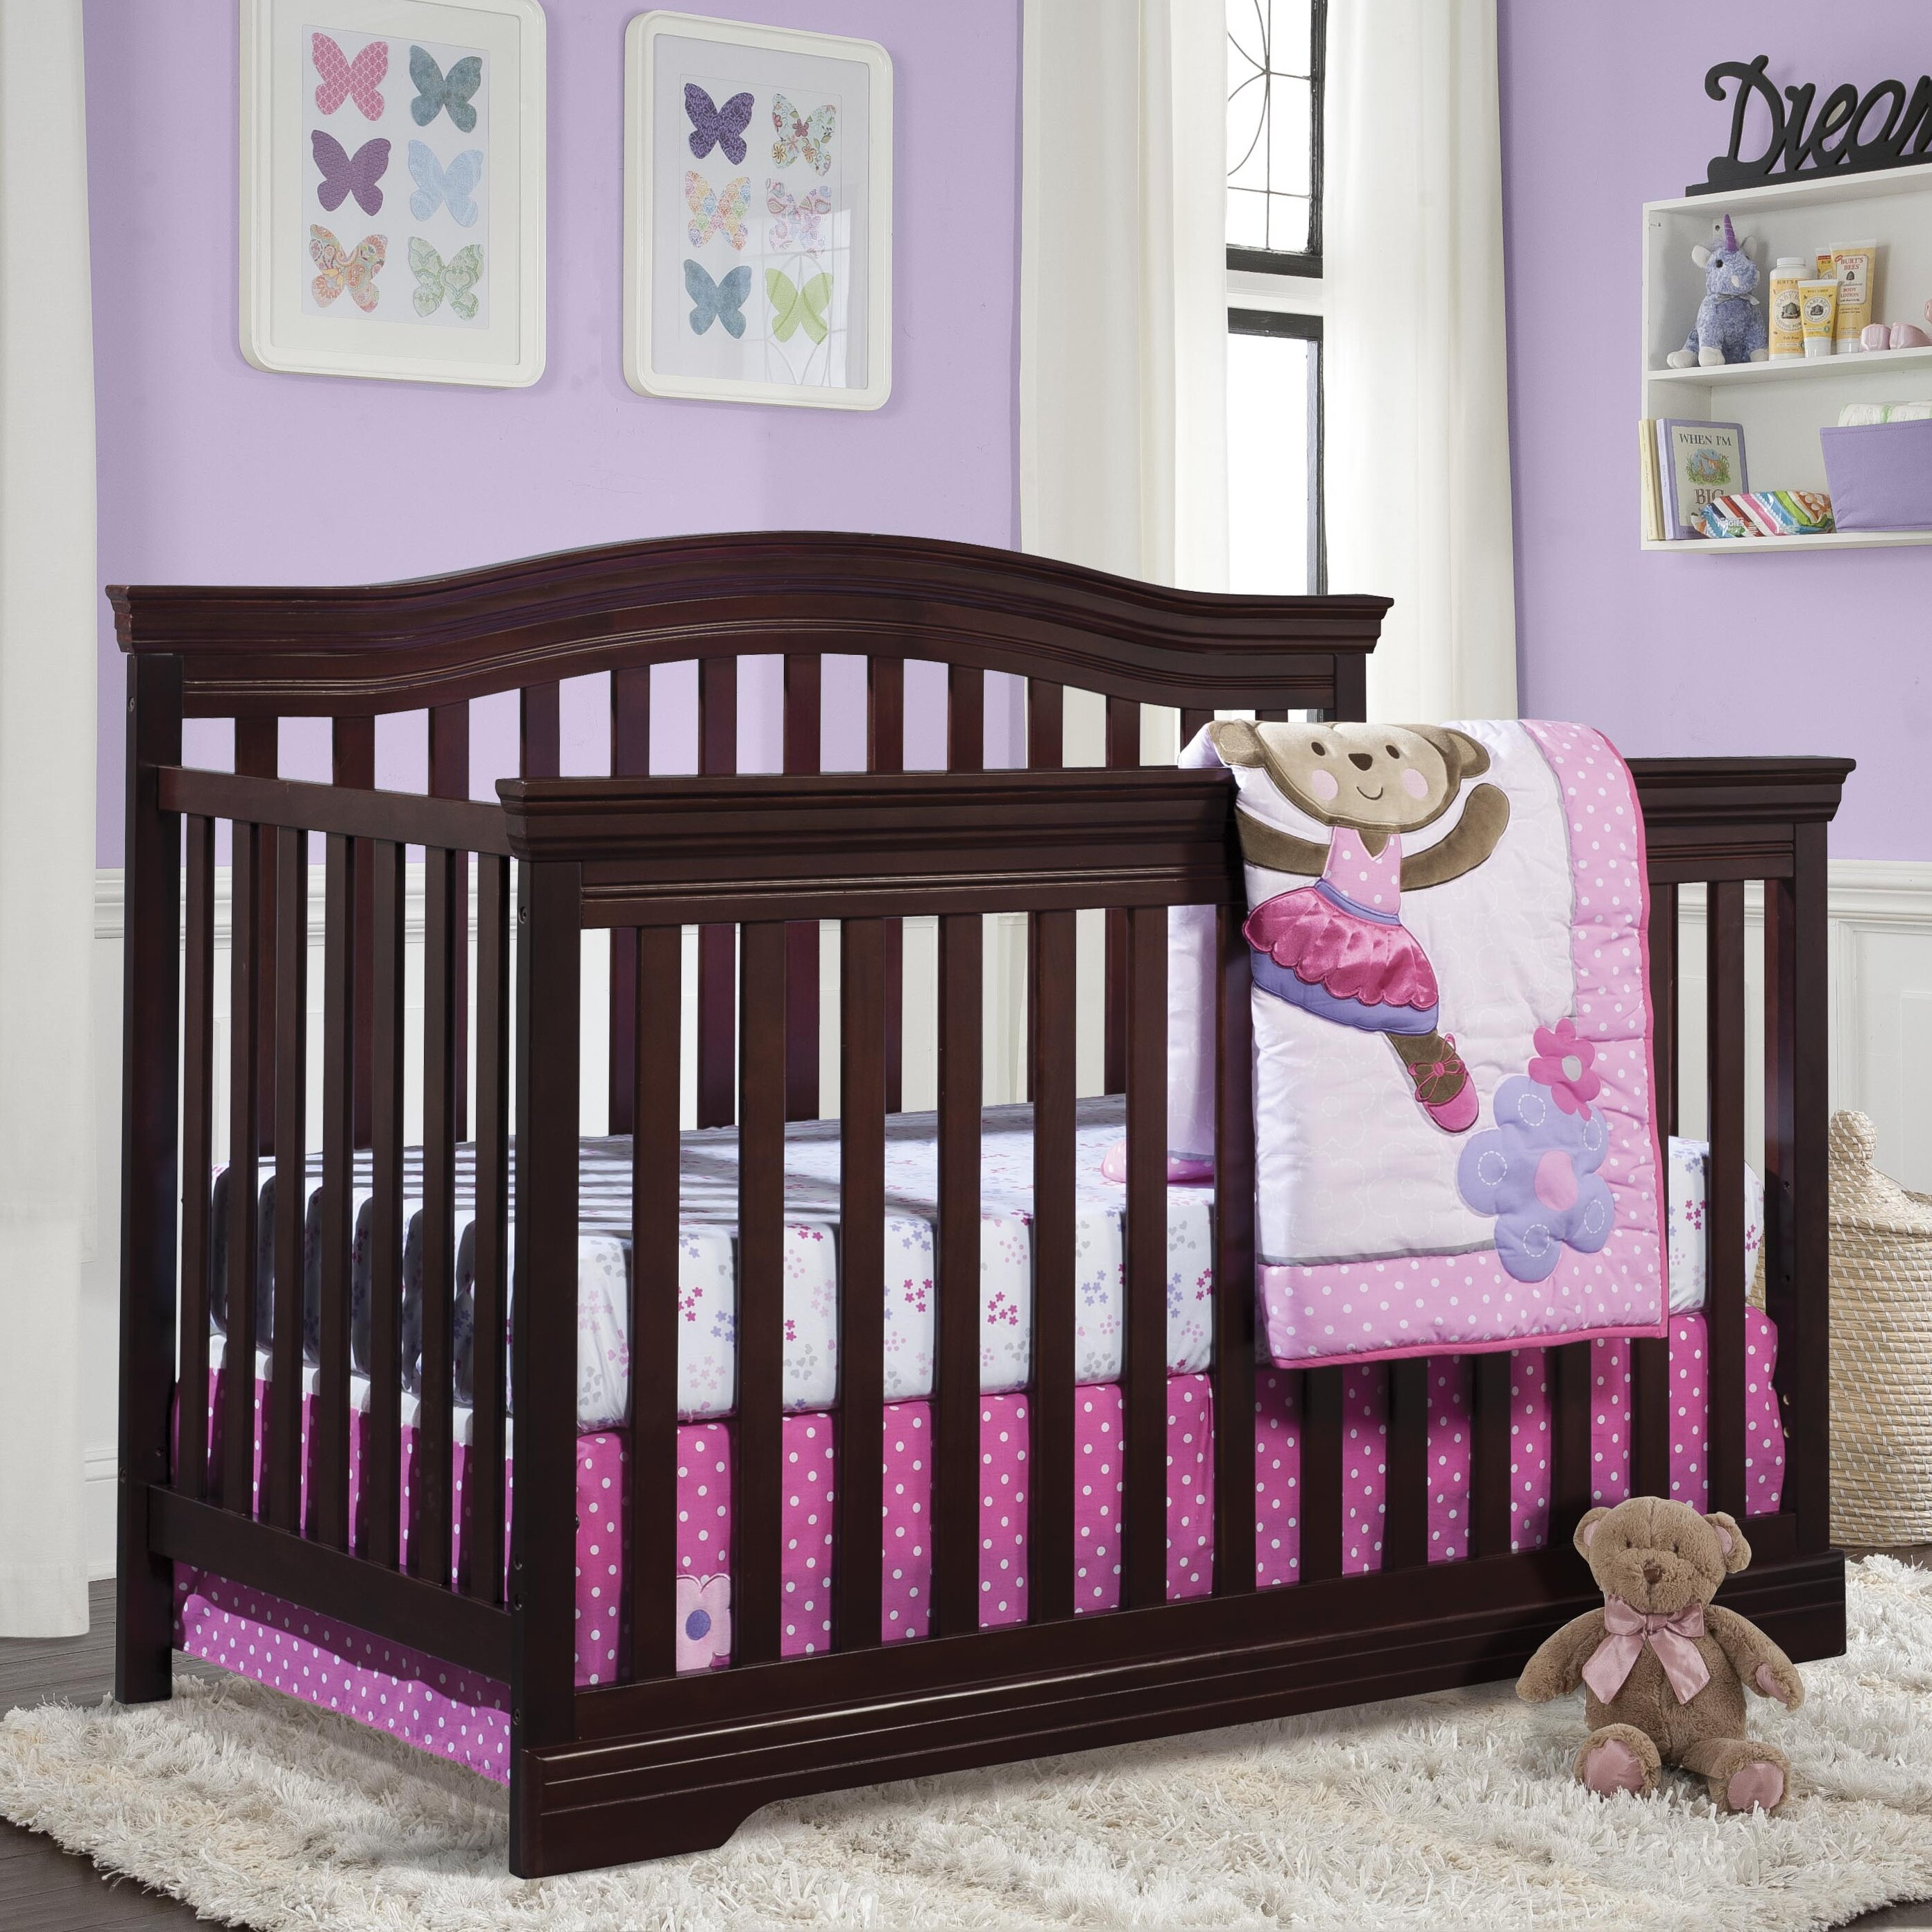 Broyhill Kids Bowen 4 In 1 Heights Convertible Crib